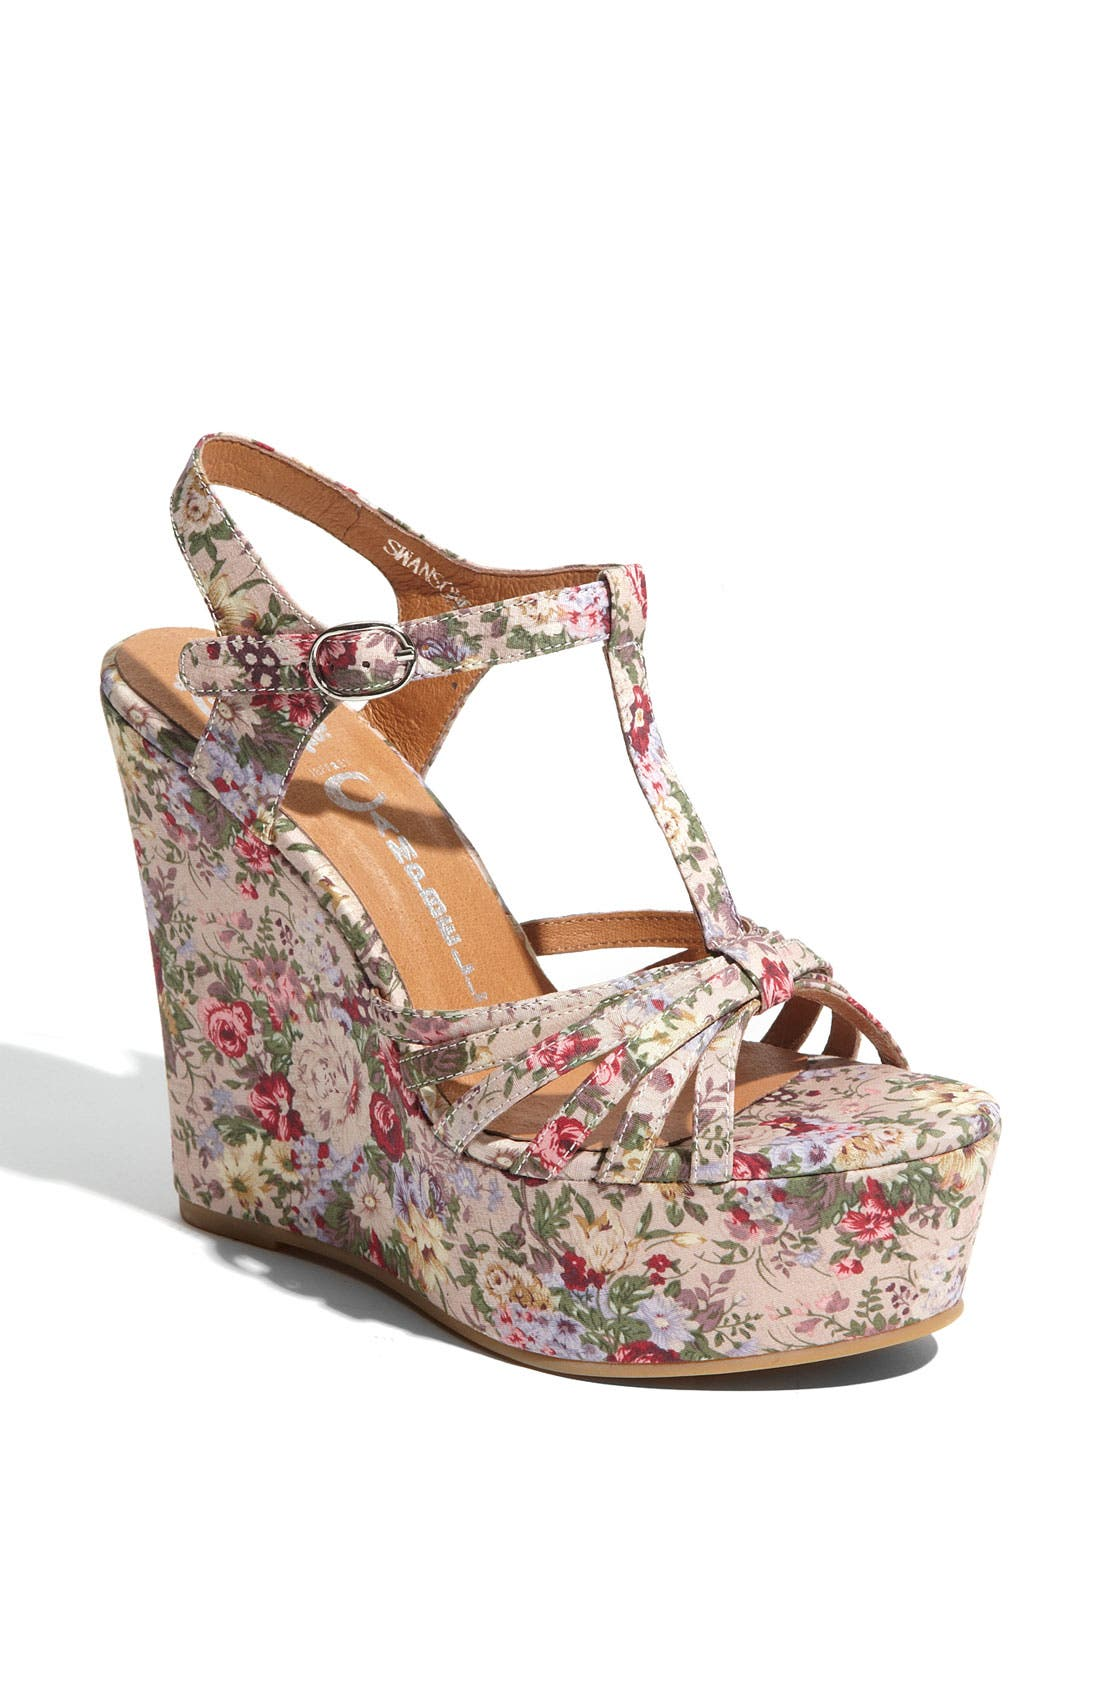 Alternate Image 1 Selected - Jeffrey Campbell 'Swansong' Wedge Sandal